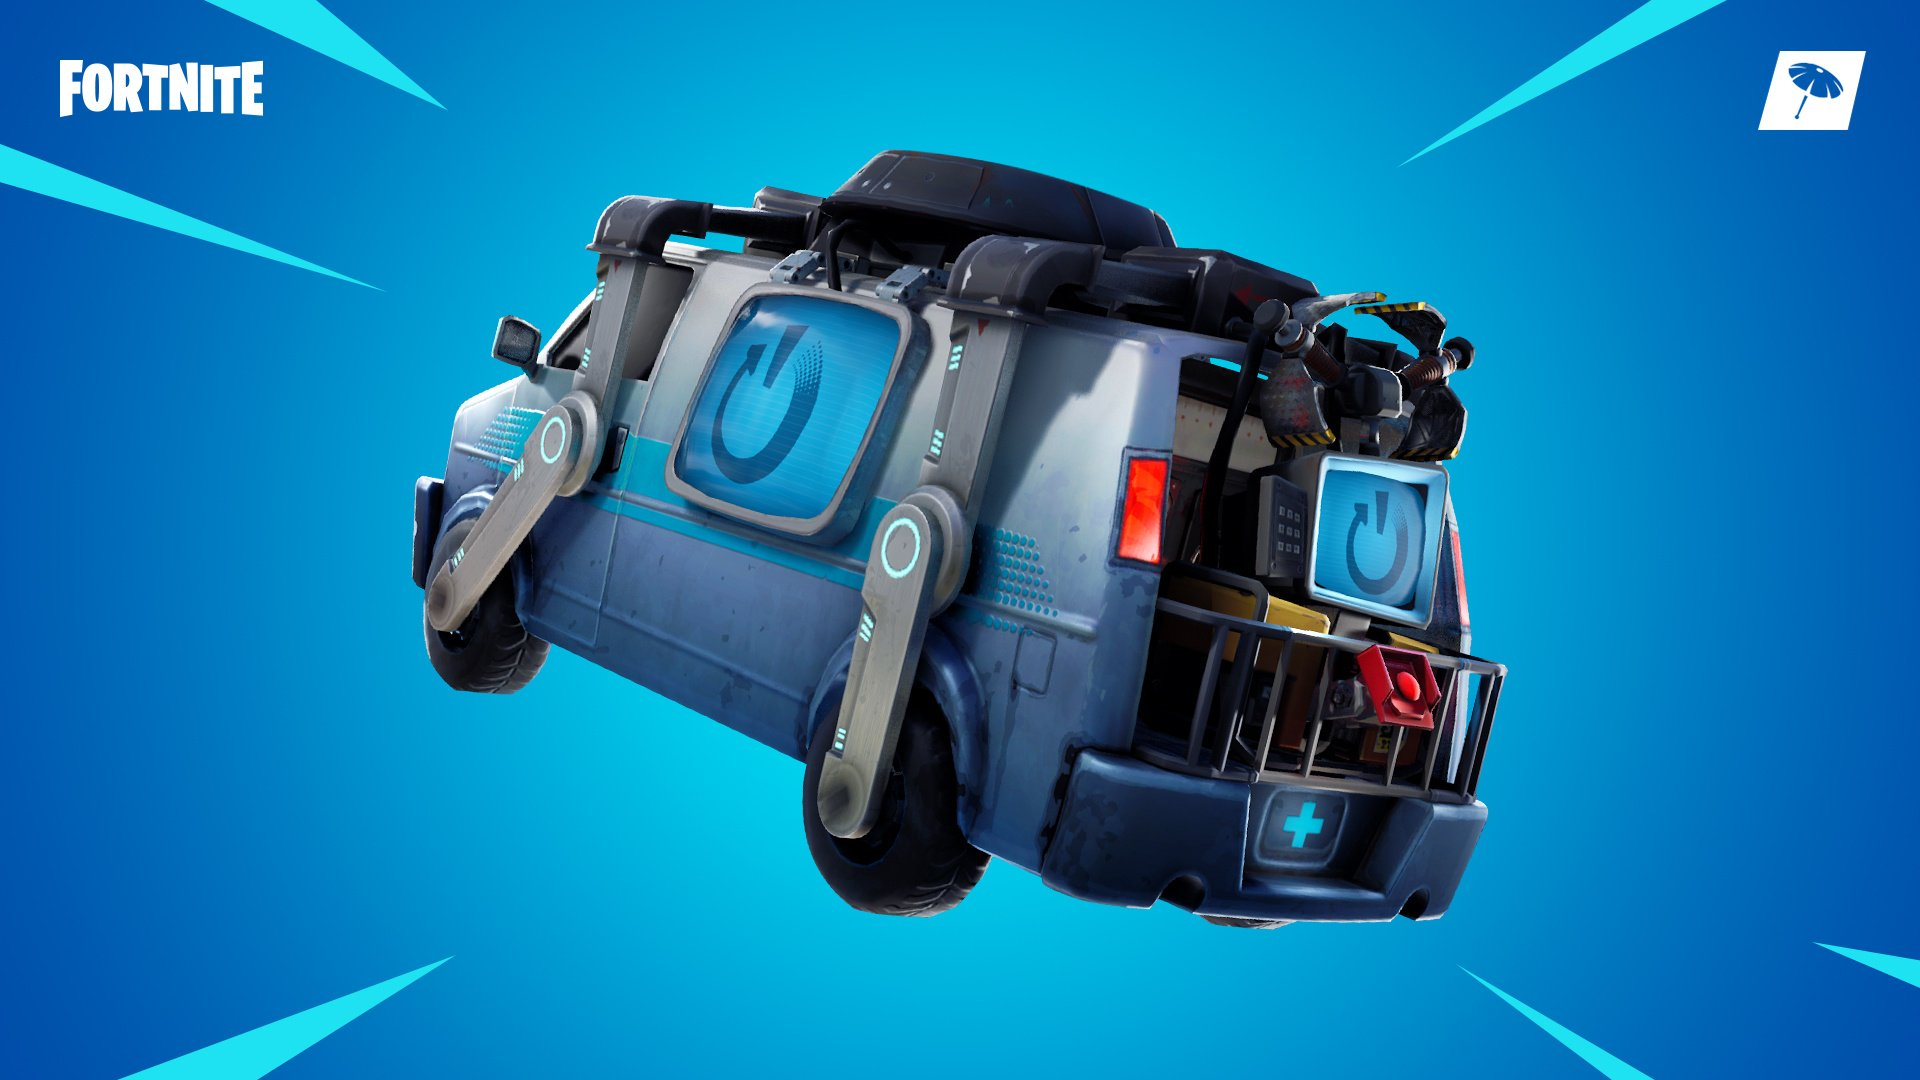 Fortnite v8.30 patch notes: Reboot Van, Buccaneer's Bounty event